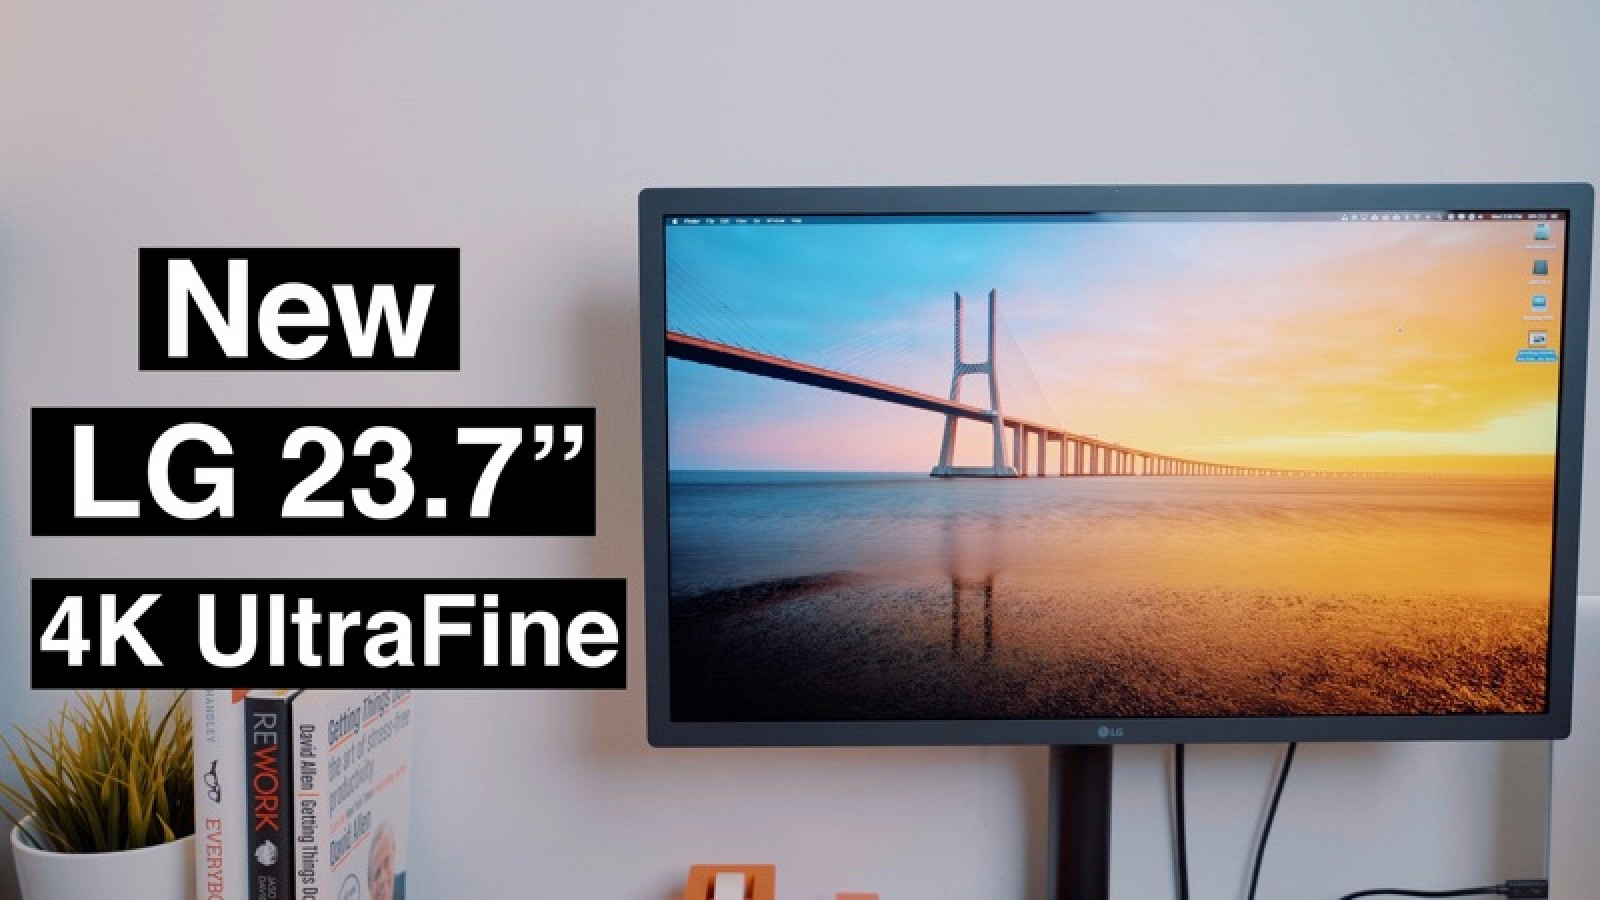 Hands-On With the New 4K 23.7-Inch LG UltraFine Display